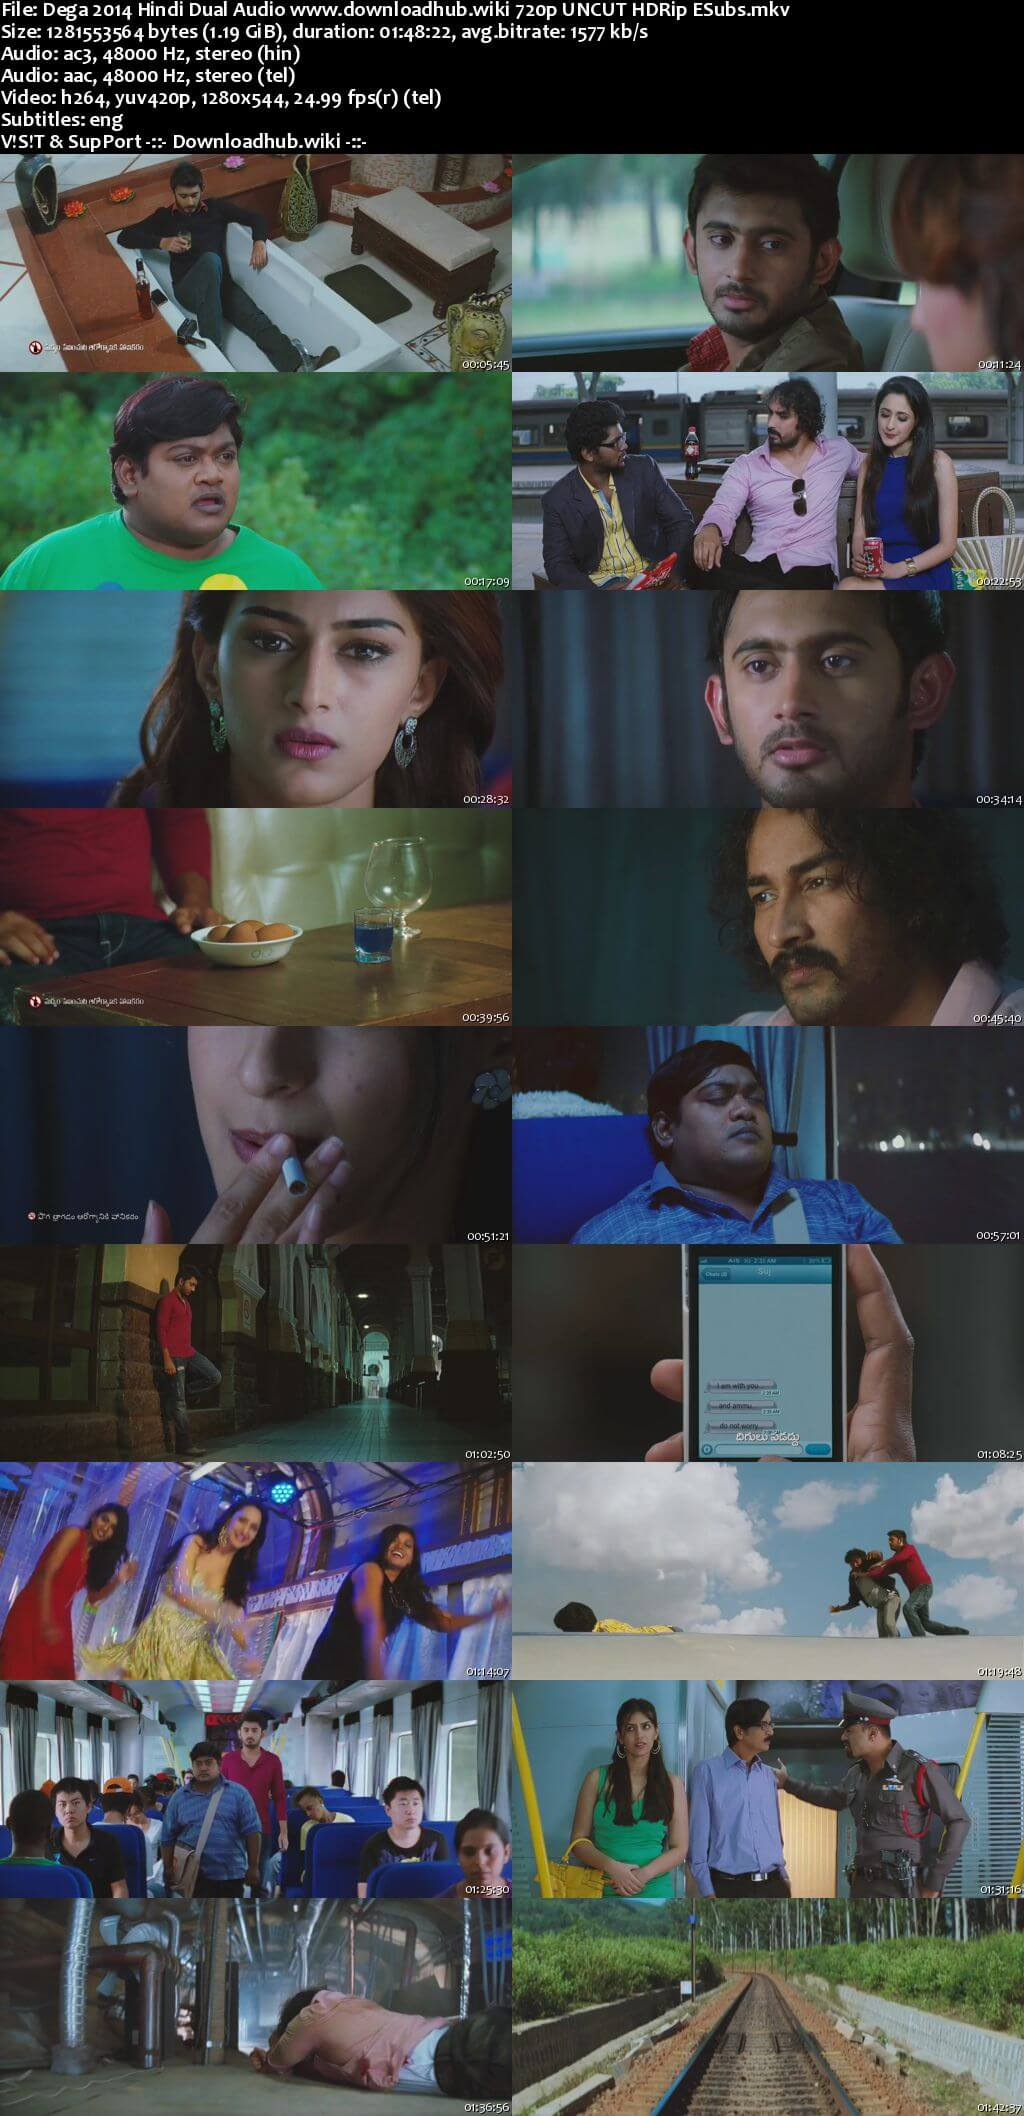 Dega 2014 Hindi Dual Audio 720p UNCUT HDRip ESubs